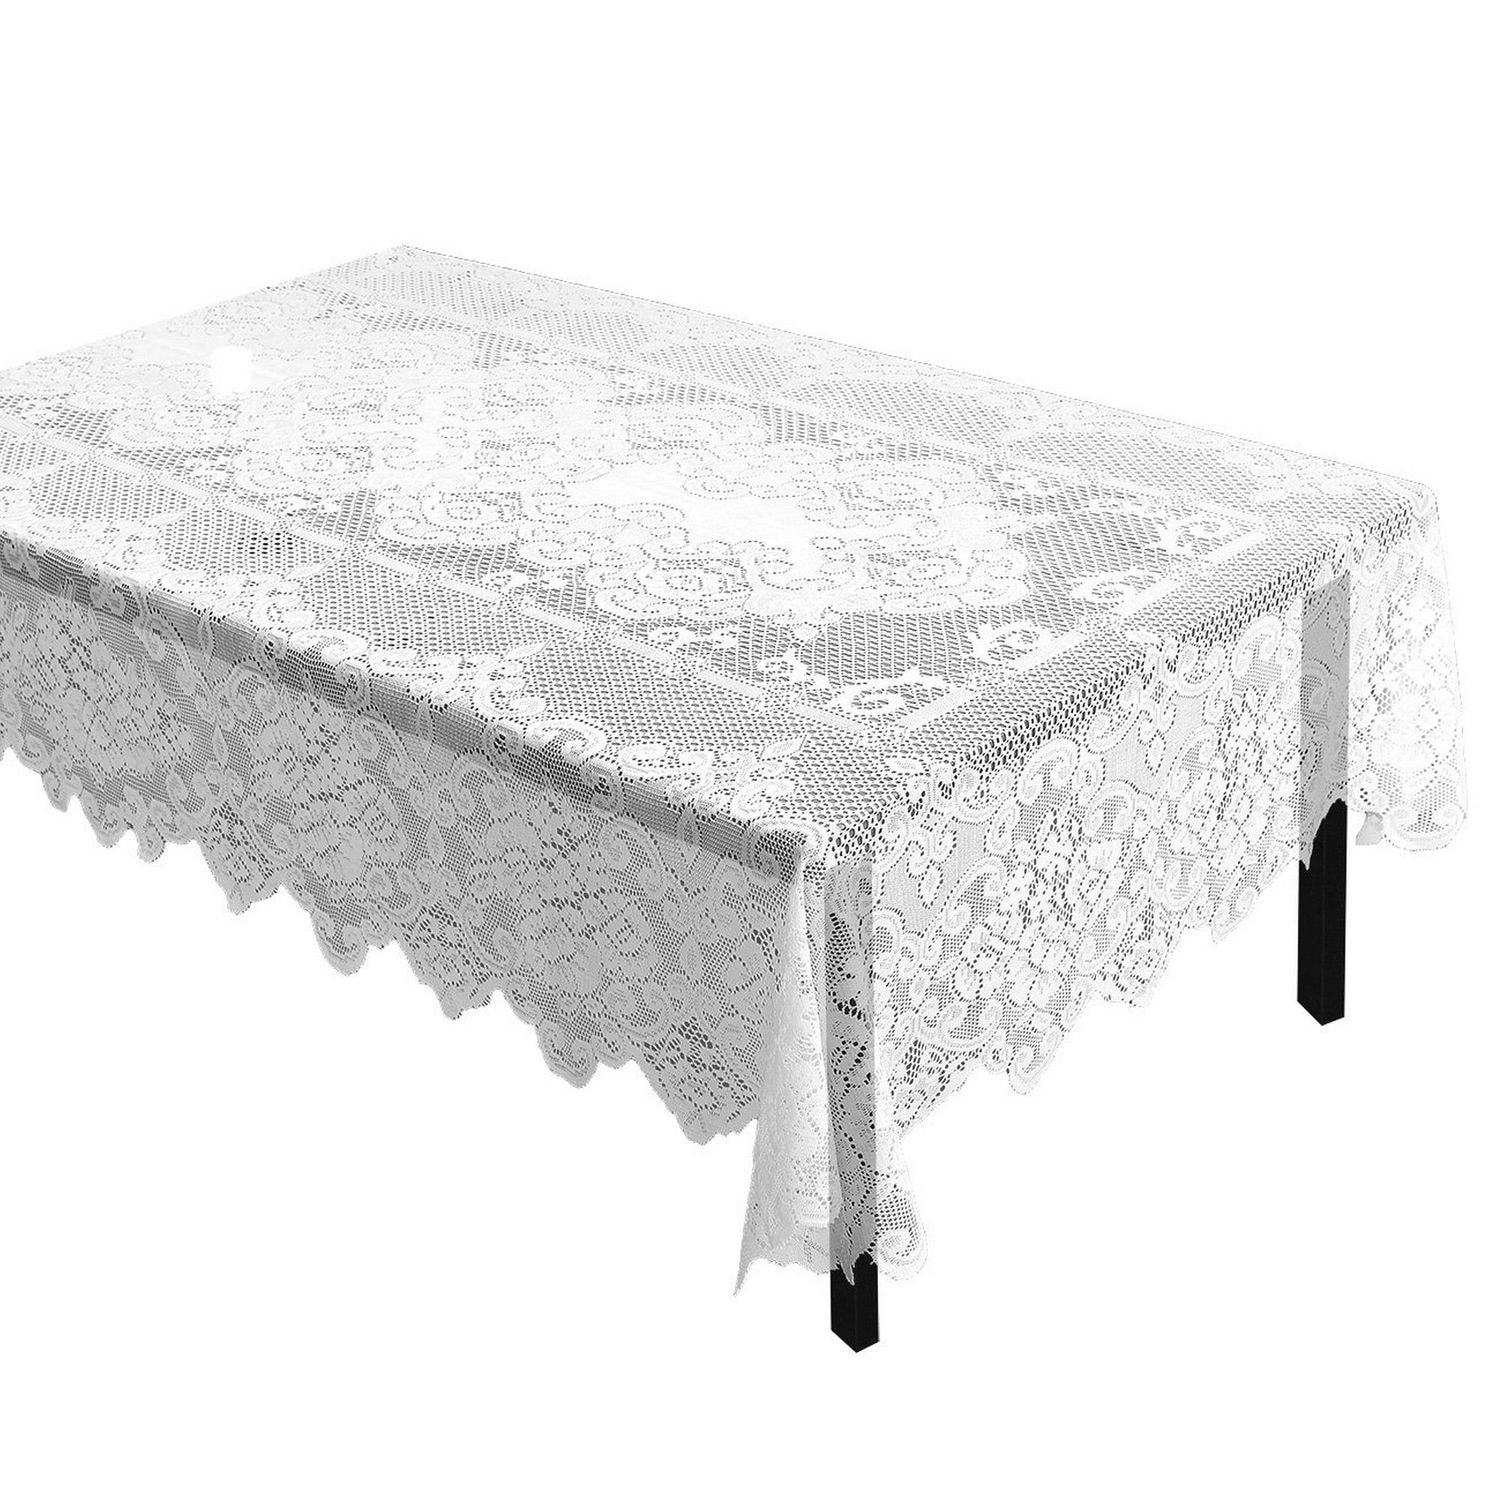 Round Trade show Table Covers,Black Tablecloth,Premium White Table covers.